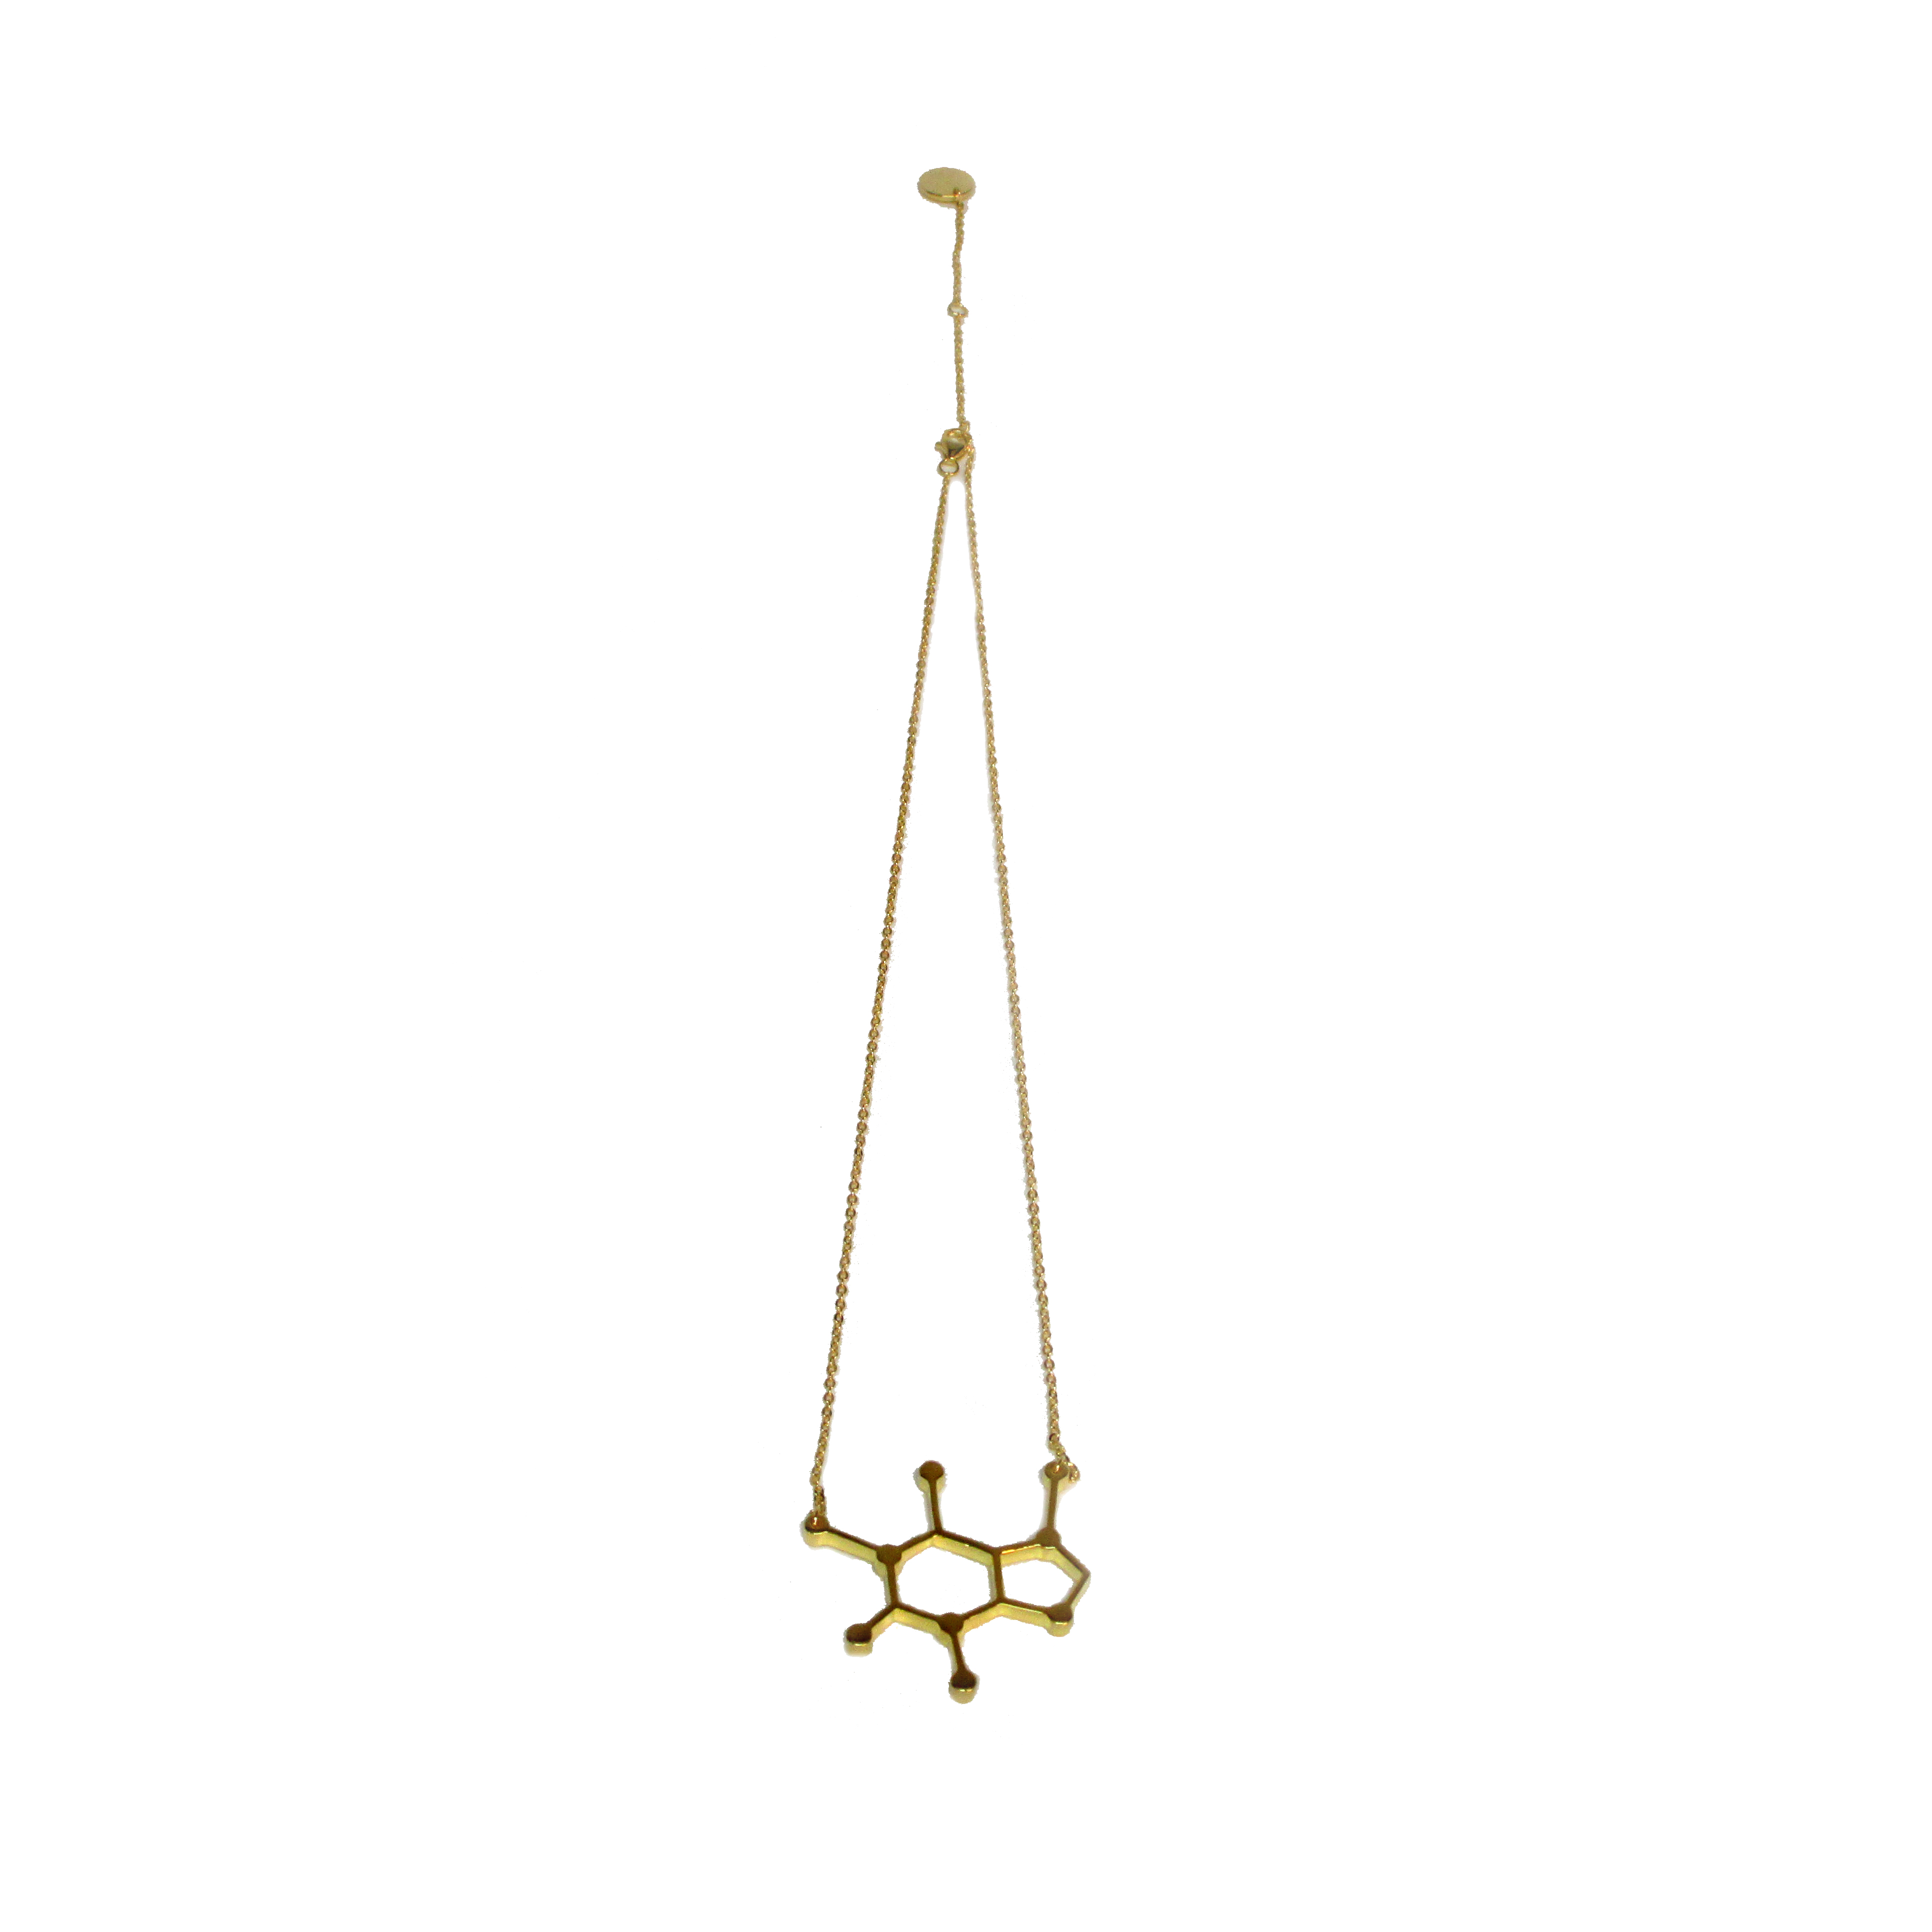 Starbucks gold plated caffeine molecule necklace